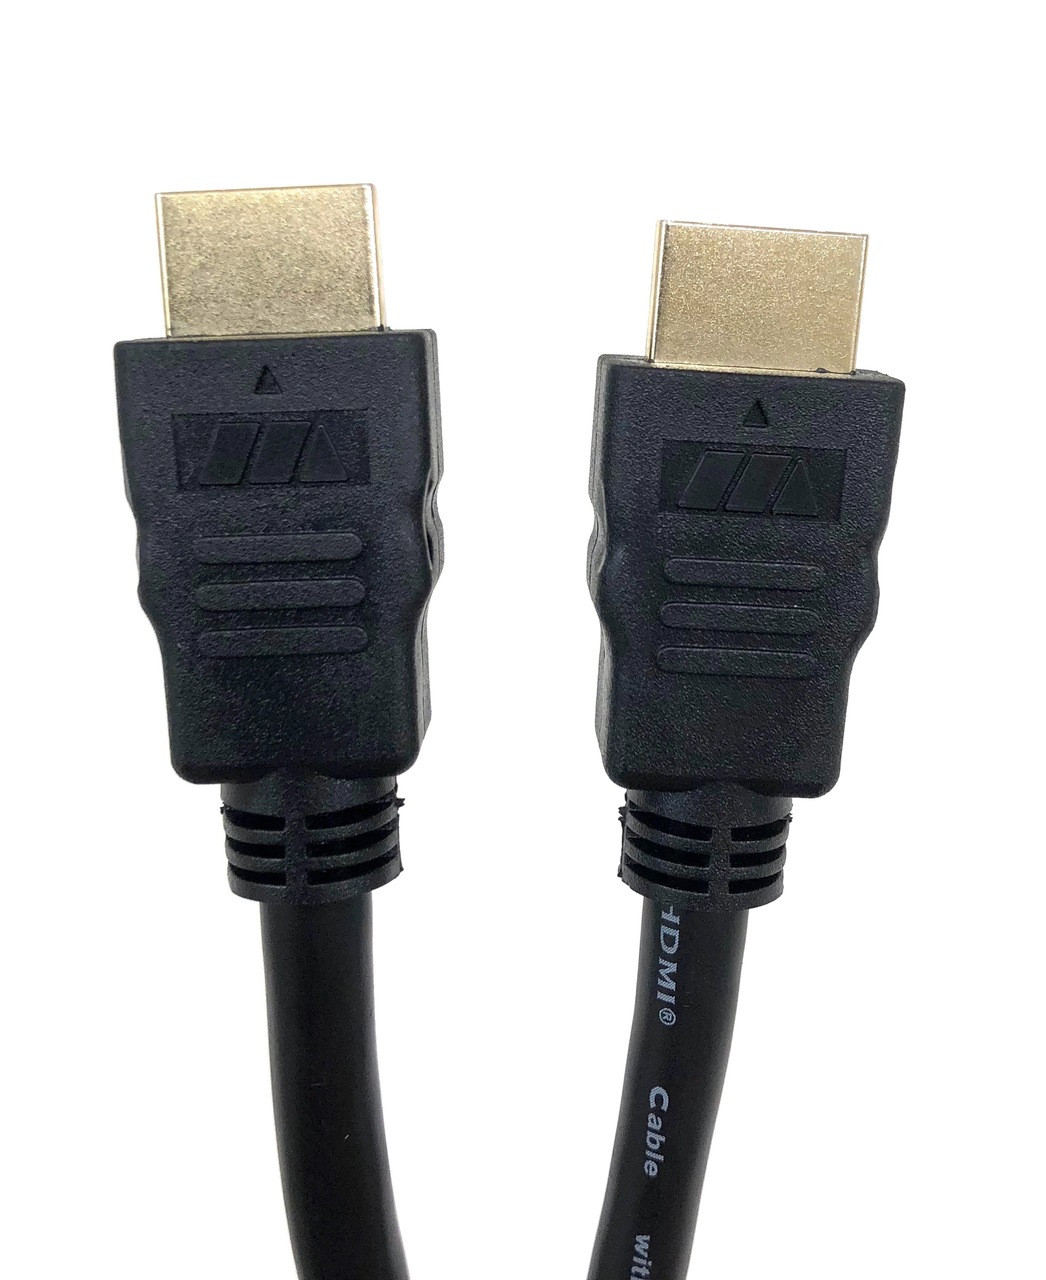 Premium Certified 4K Ultra HD HDMI Cable - 3ft